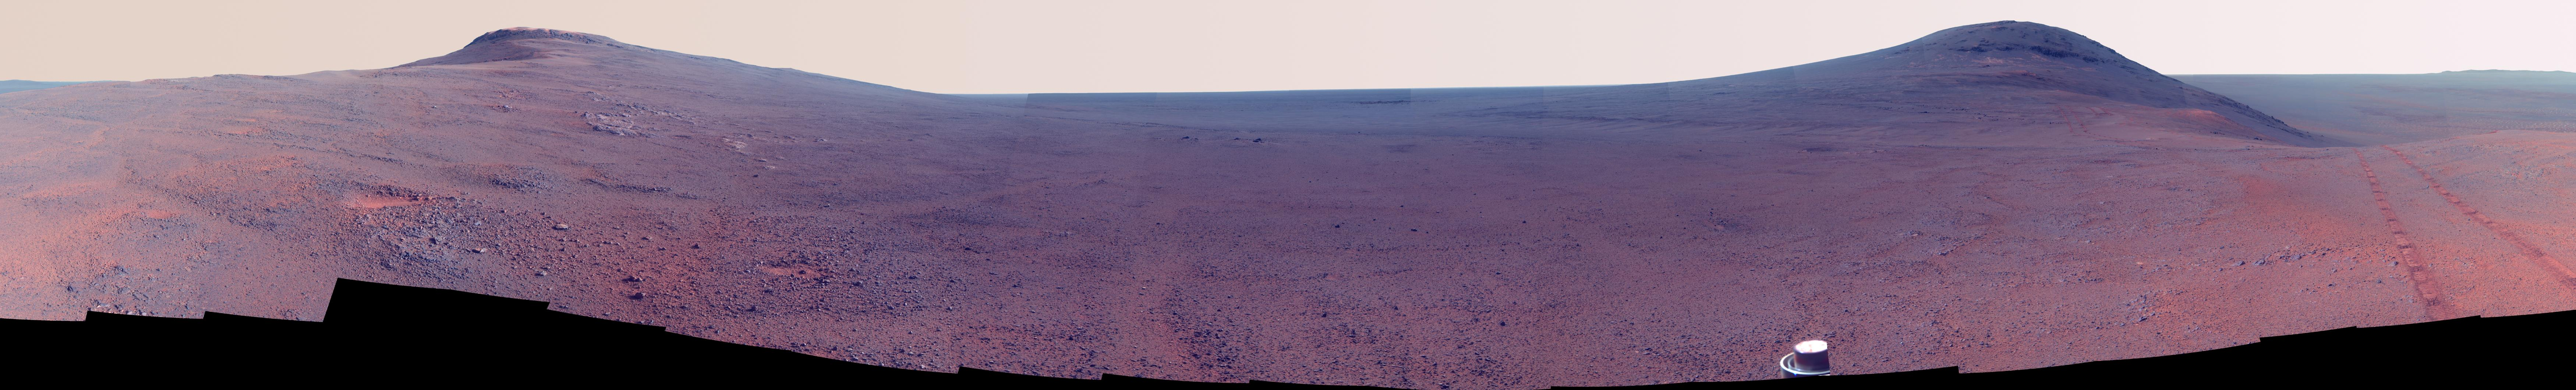 Enhanced Color Panorama Above 'Perseverance Valley' on Mars